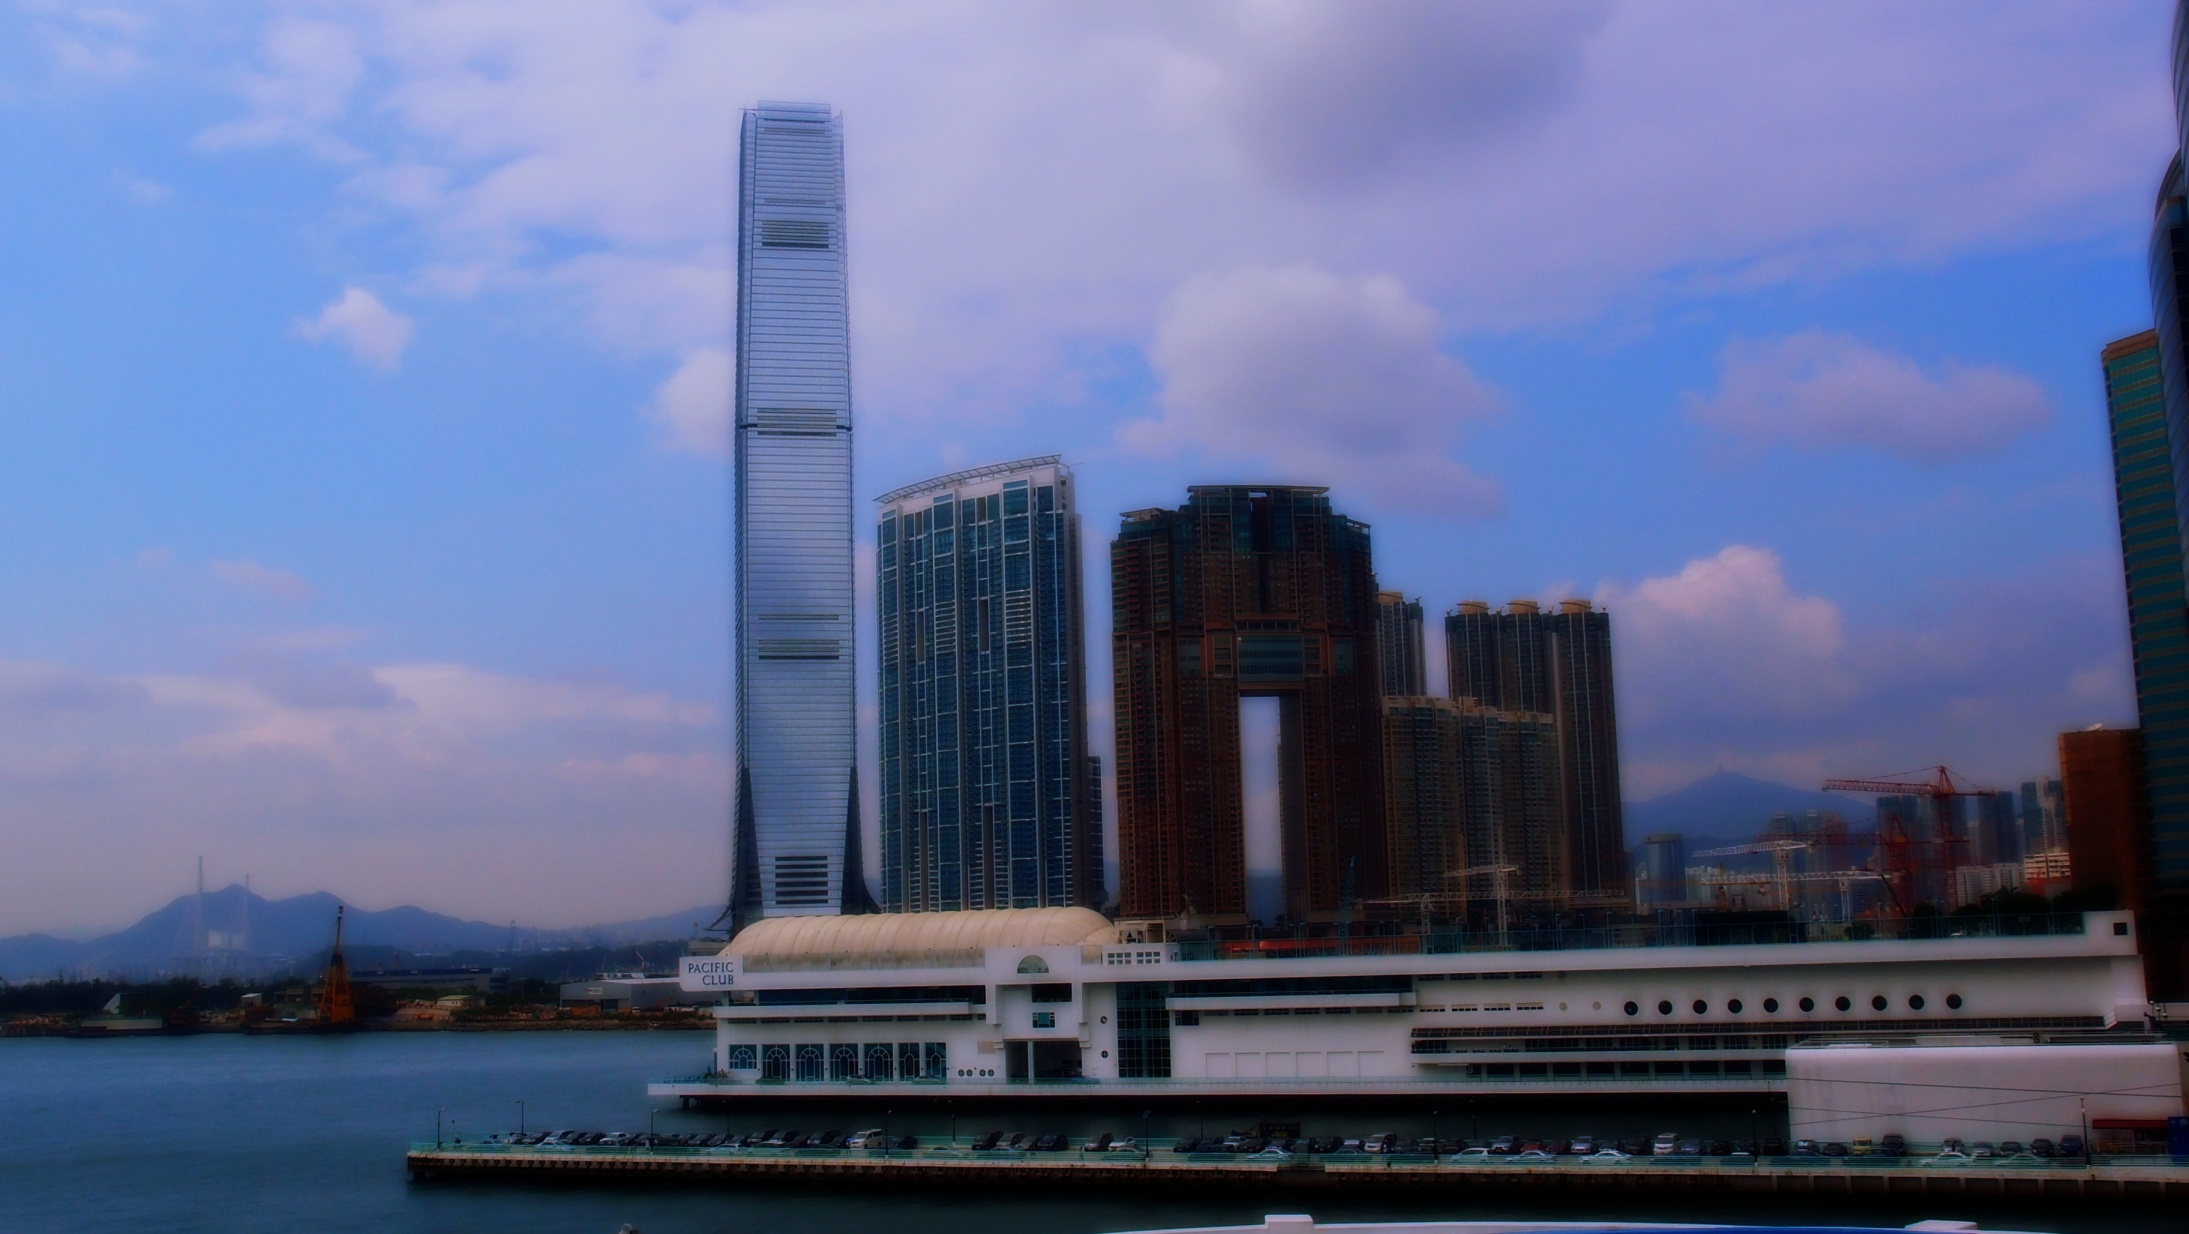 Looking at West Kowloon and the magnificent ICC Building, 118 floors with the Ritz Carlton Hotel on the top 16 floors.